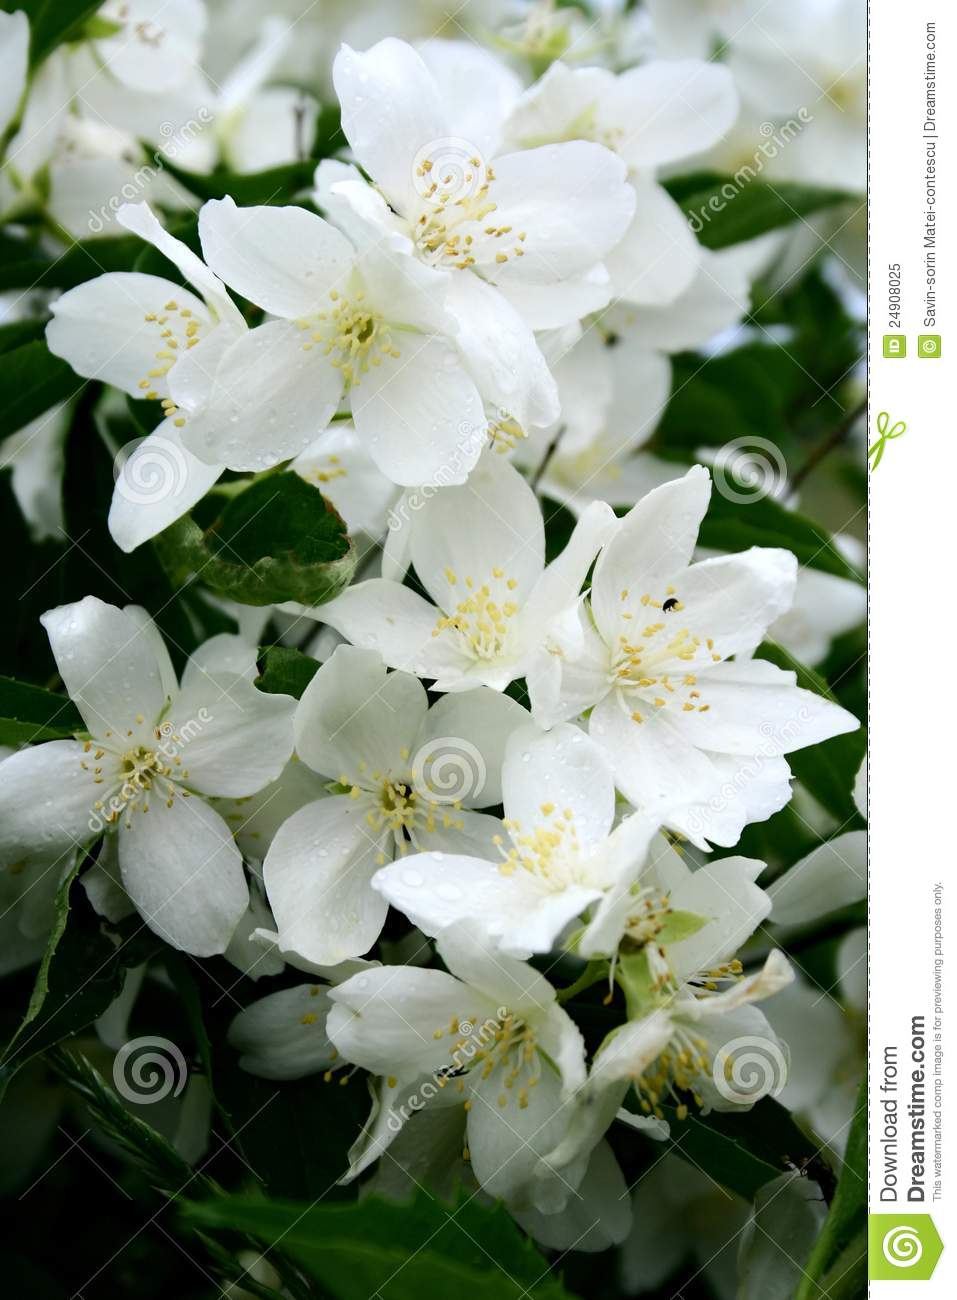 Jasmine Flowers In Bloom Stock Image Image Of White 24908025